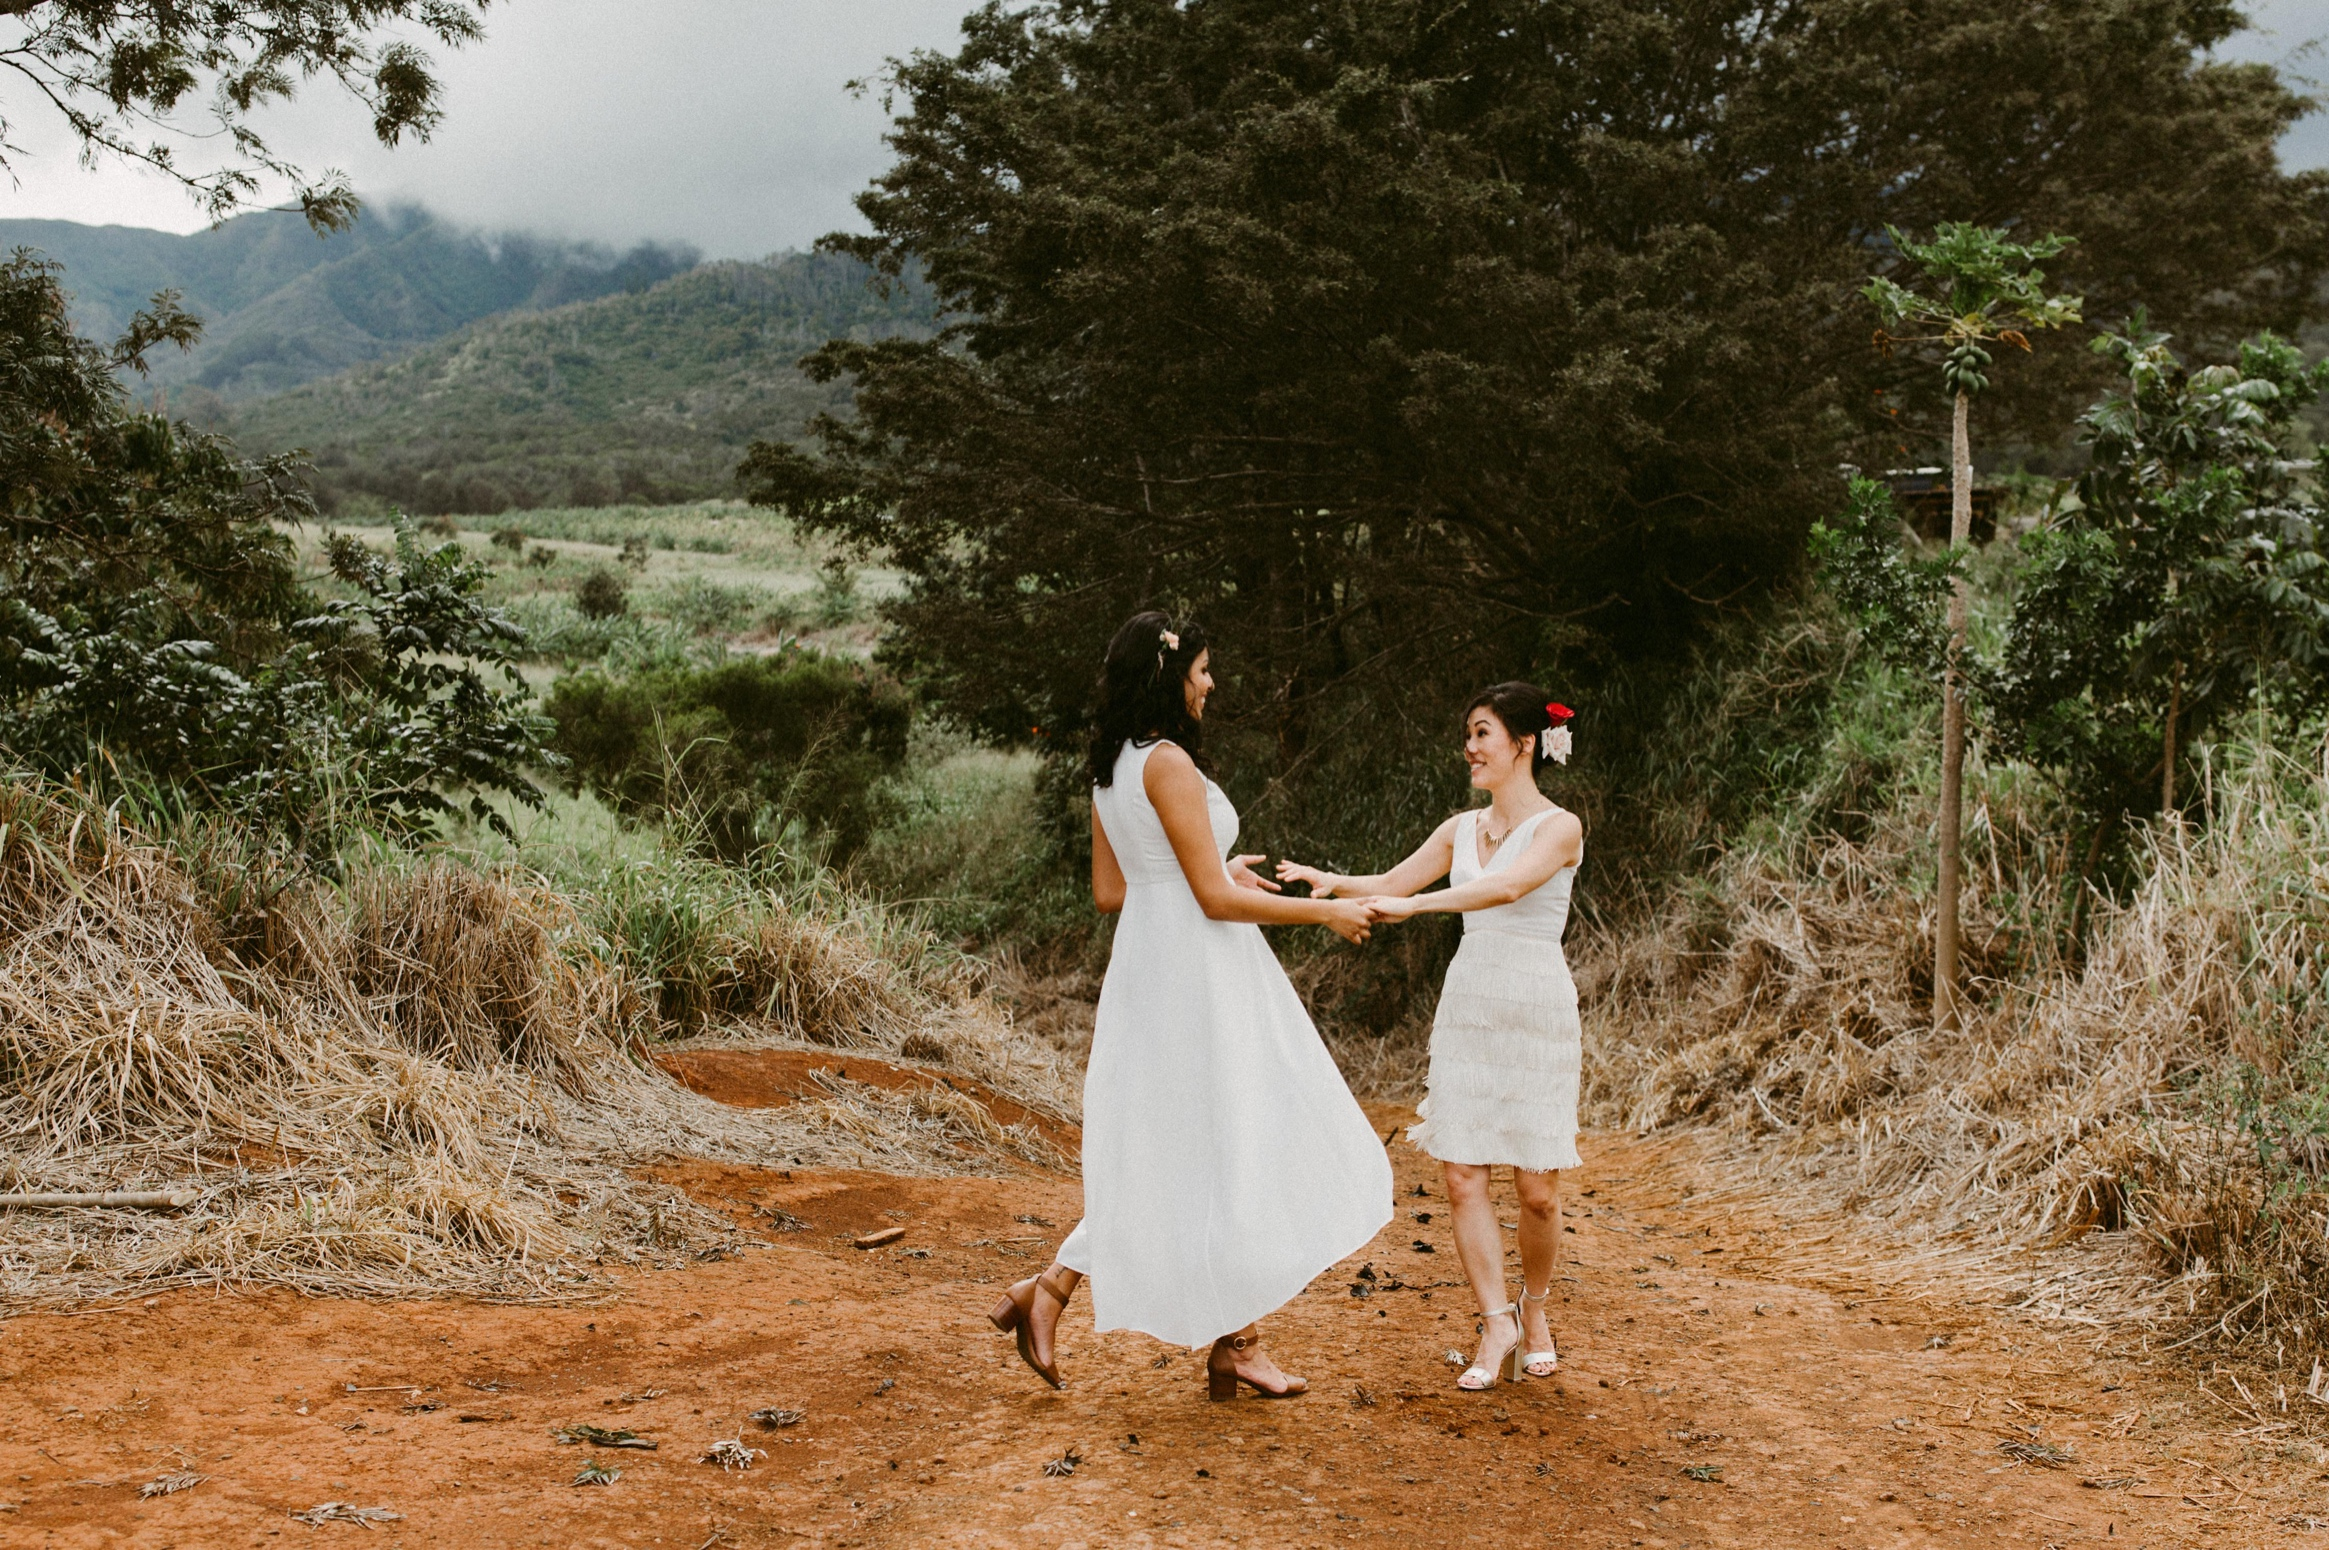 25_Oahu Hawaii Wedding  (79 of 294)_Oahu_sex_Hawaii_same_wedding_elopement_photographer.jpg